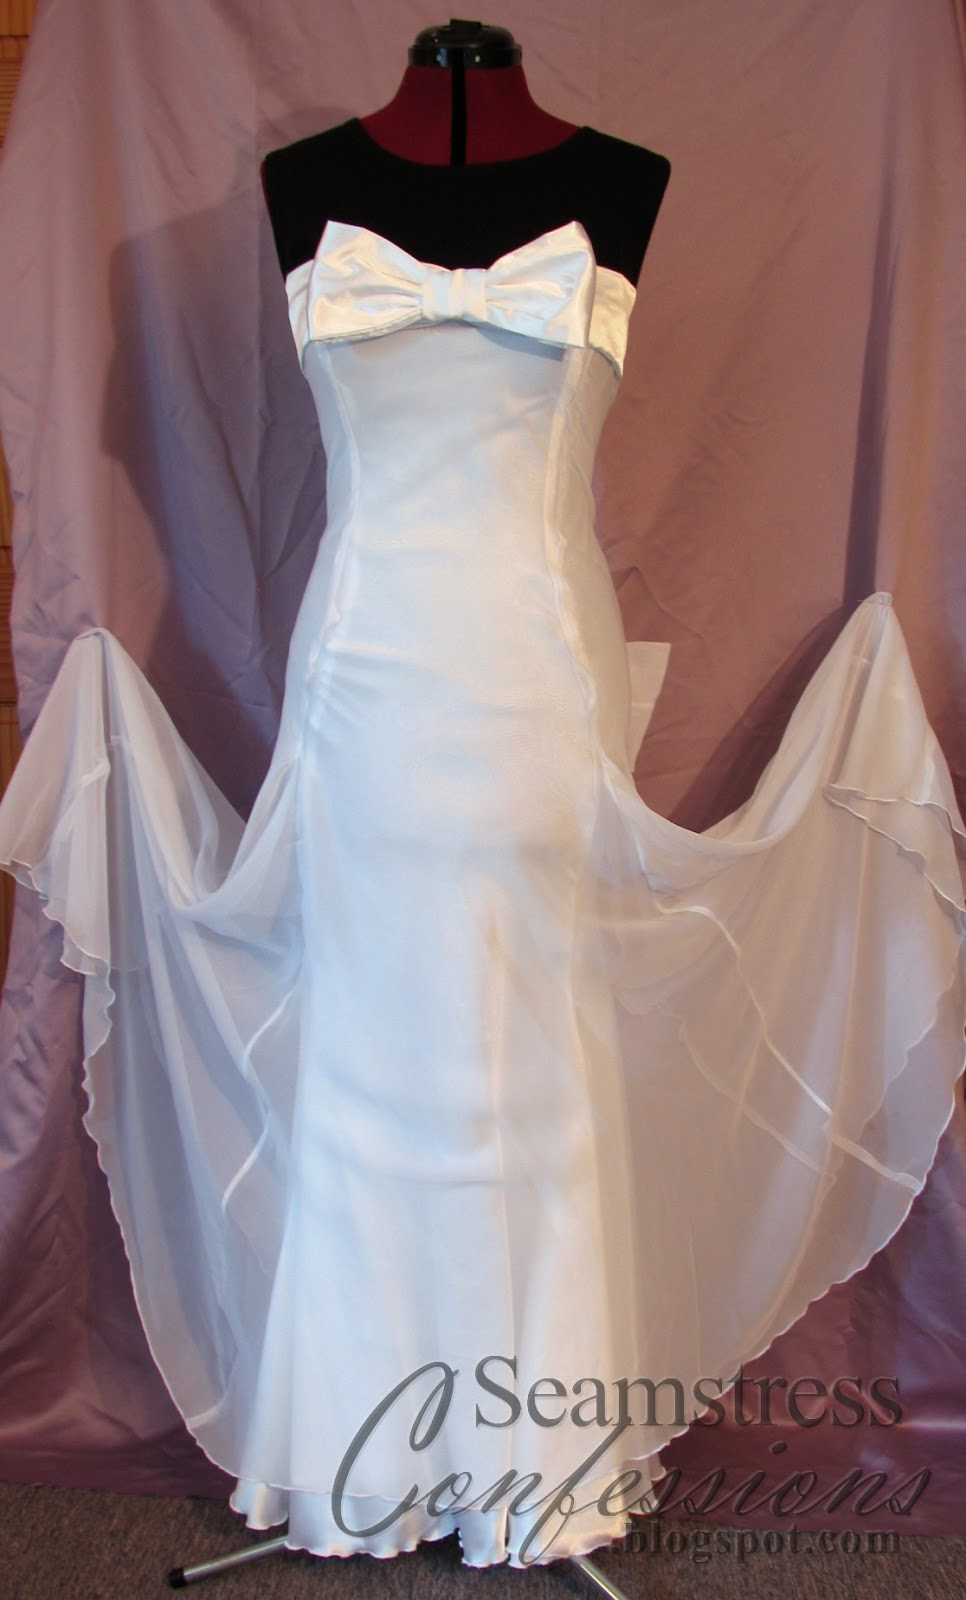 And Here Is The Finished Dress Photographed Nicely Against Some Lilac Fabric I Had Around